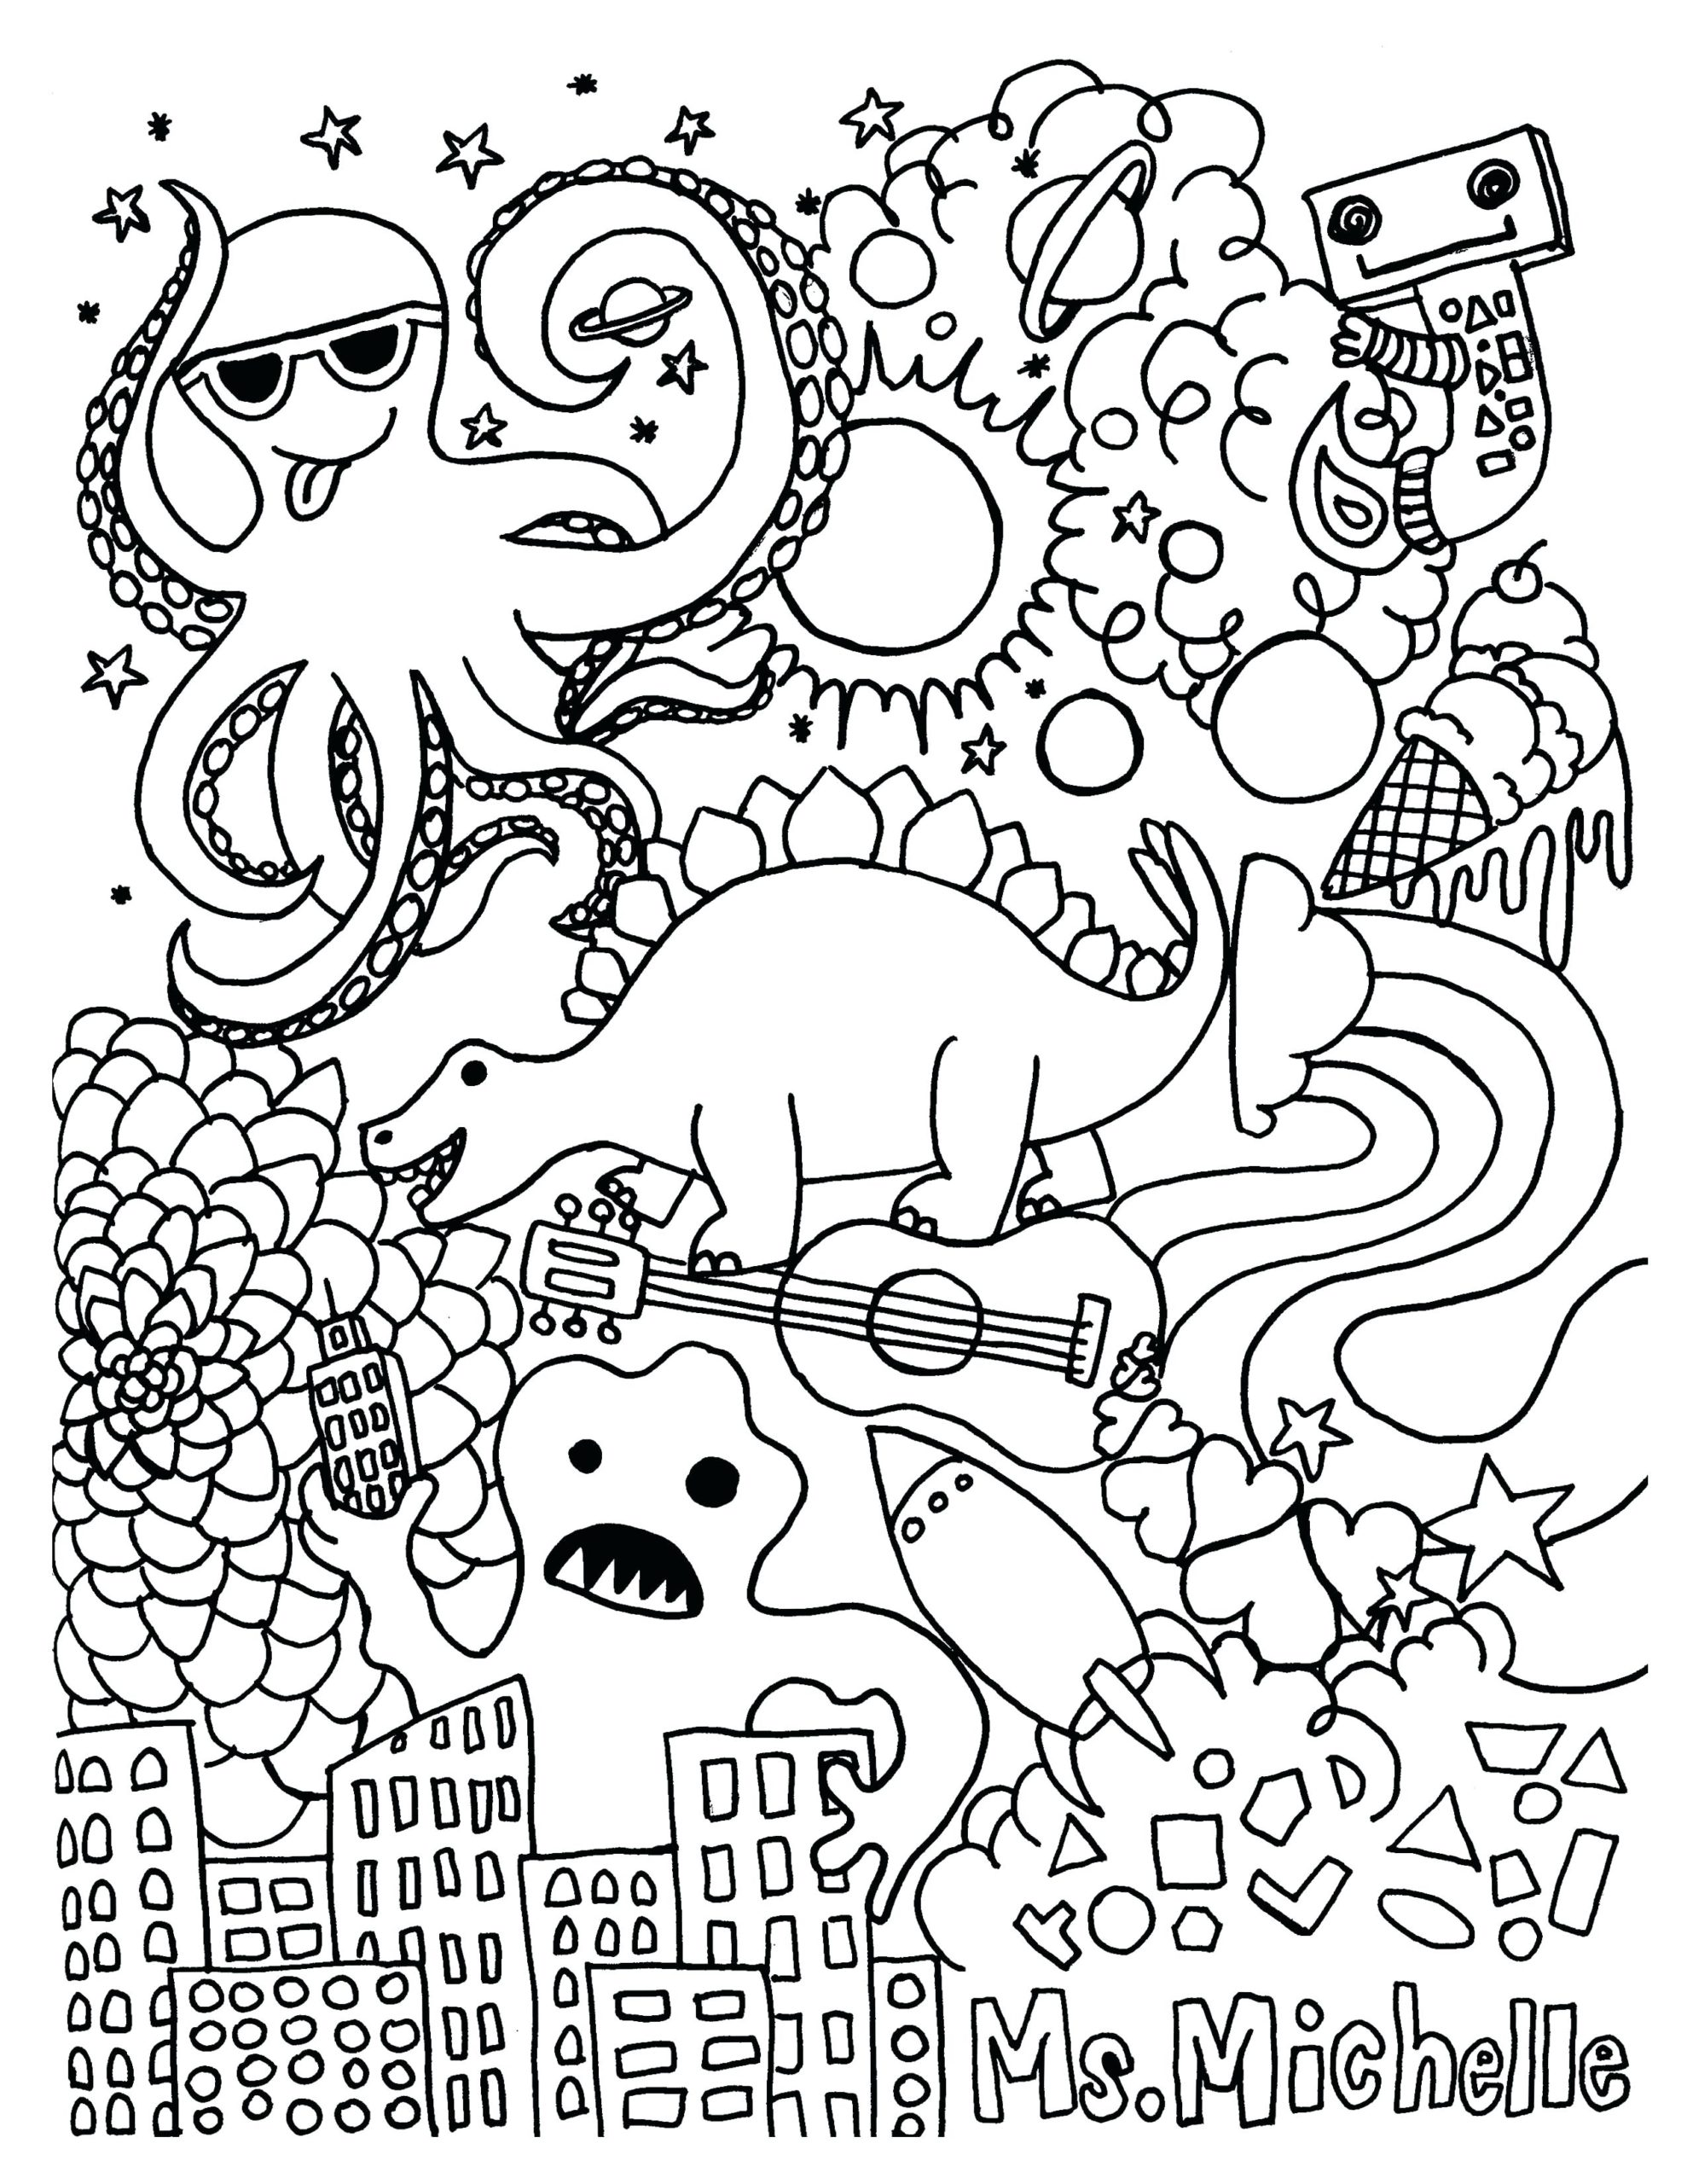 hight resolution of Maths Coloring Pages - Coloring Home